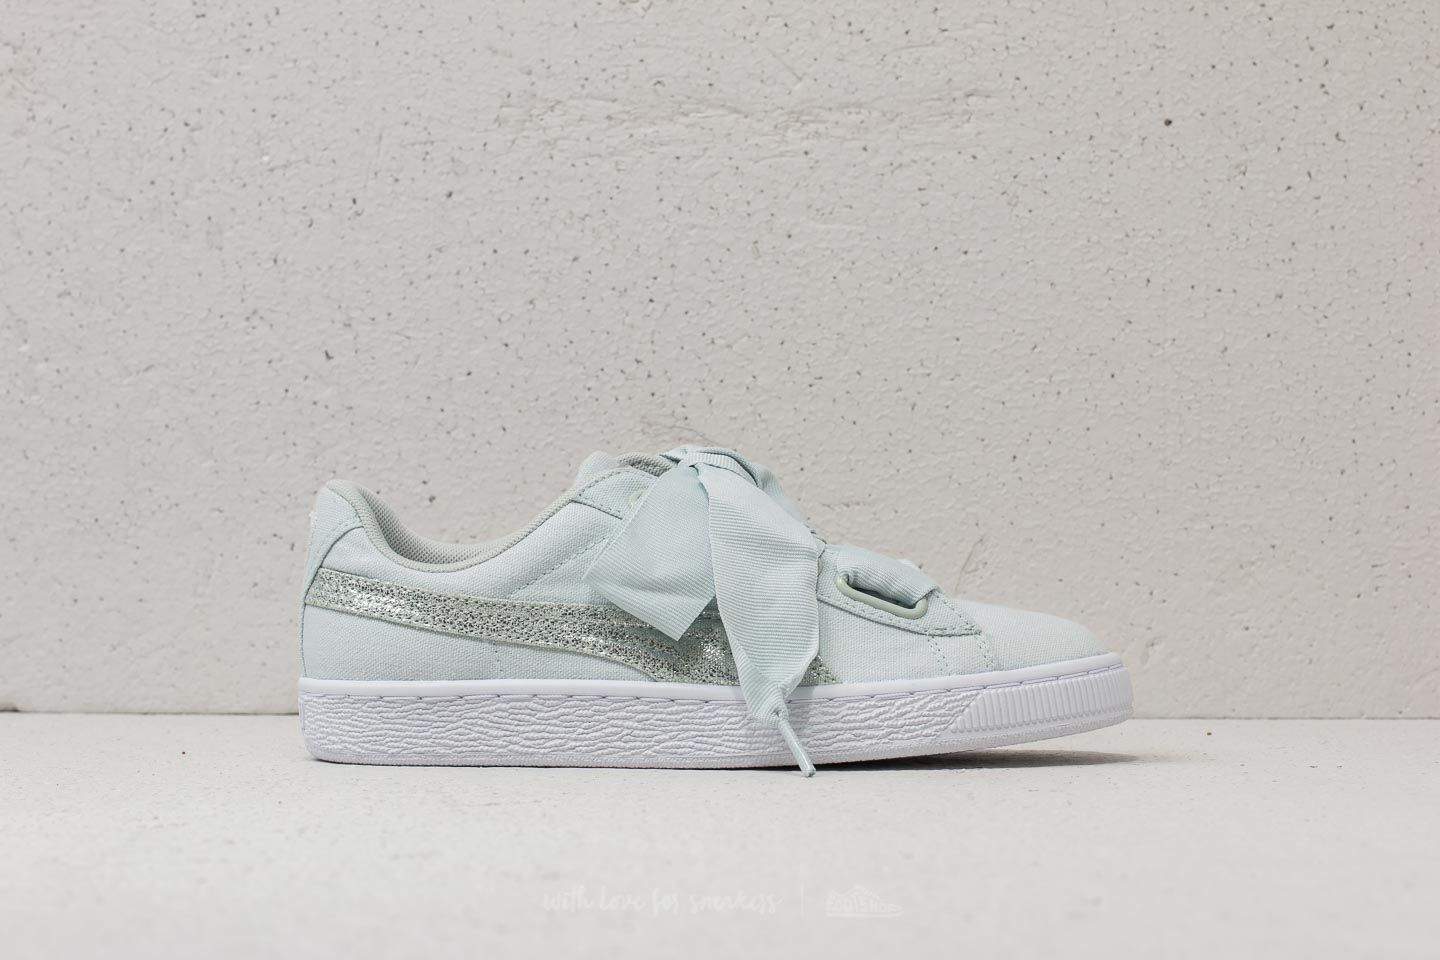 reputable site 051dd d19d3 Puma Basket Heart Canvas Wn's Blue Flower/ White/ Silver ...